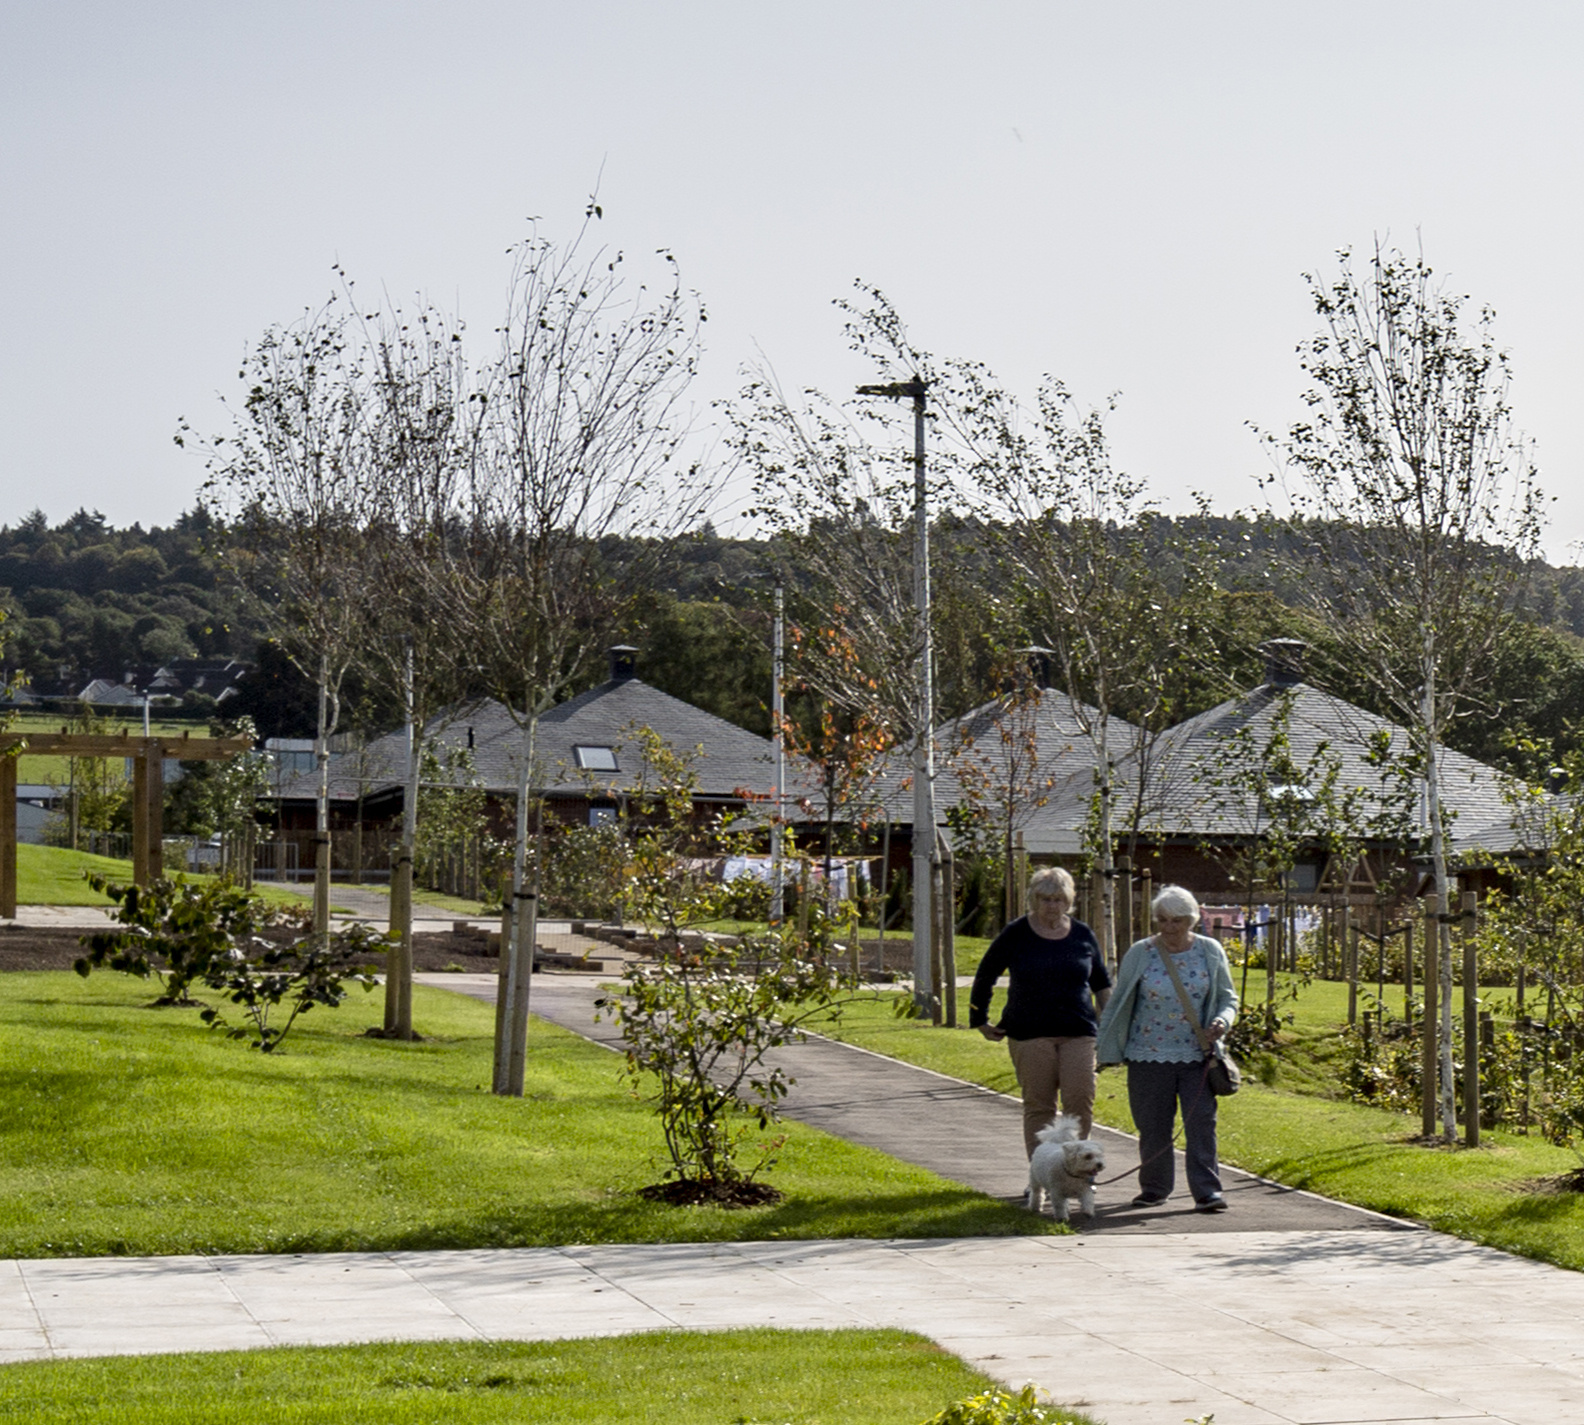 A Lifetime Neighbourhood - Ageing In Place